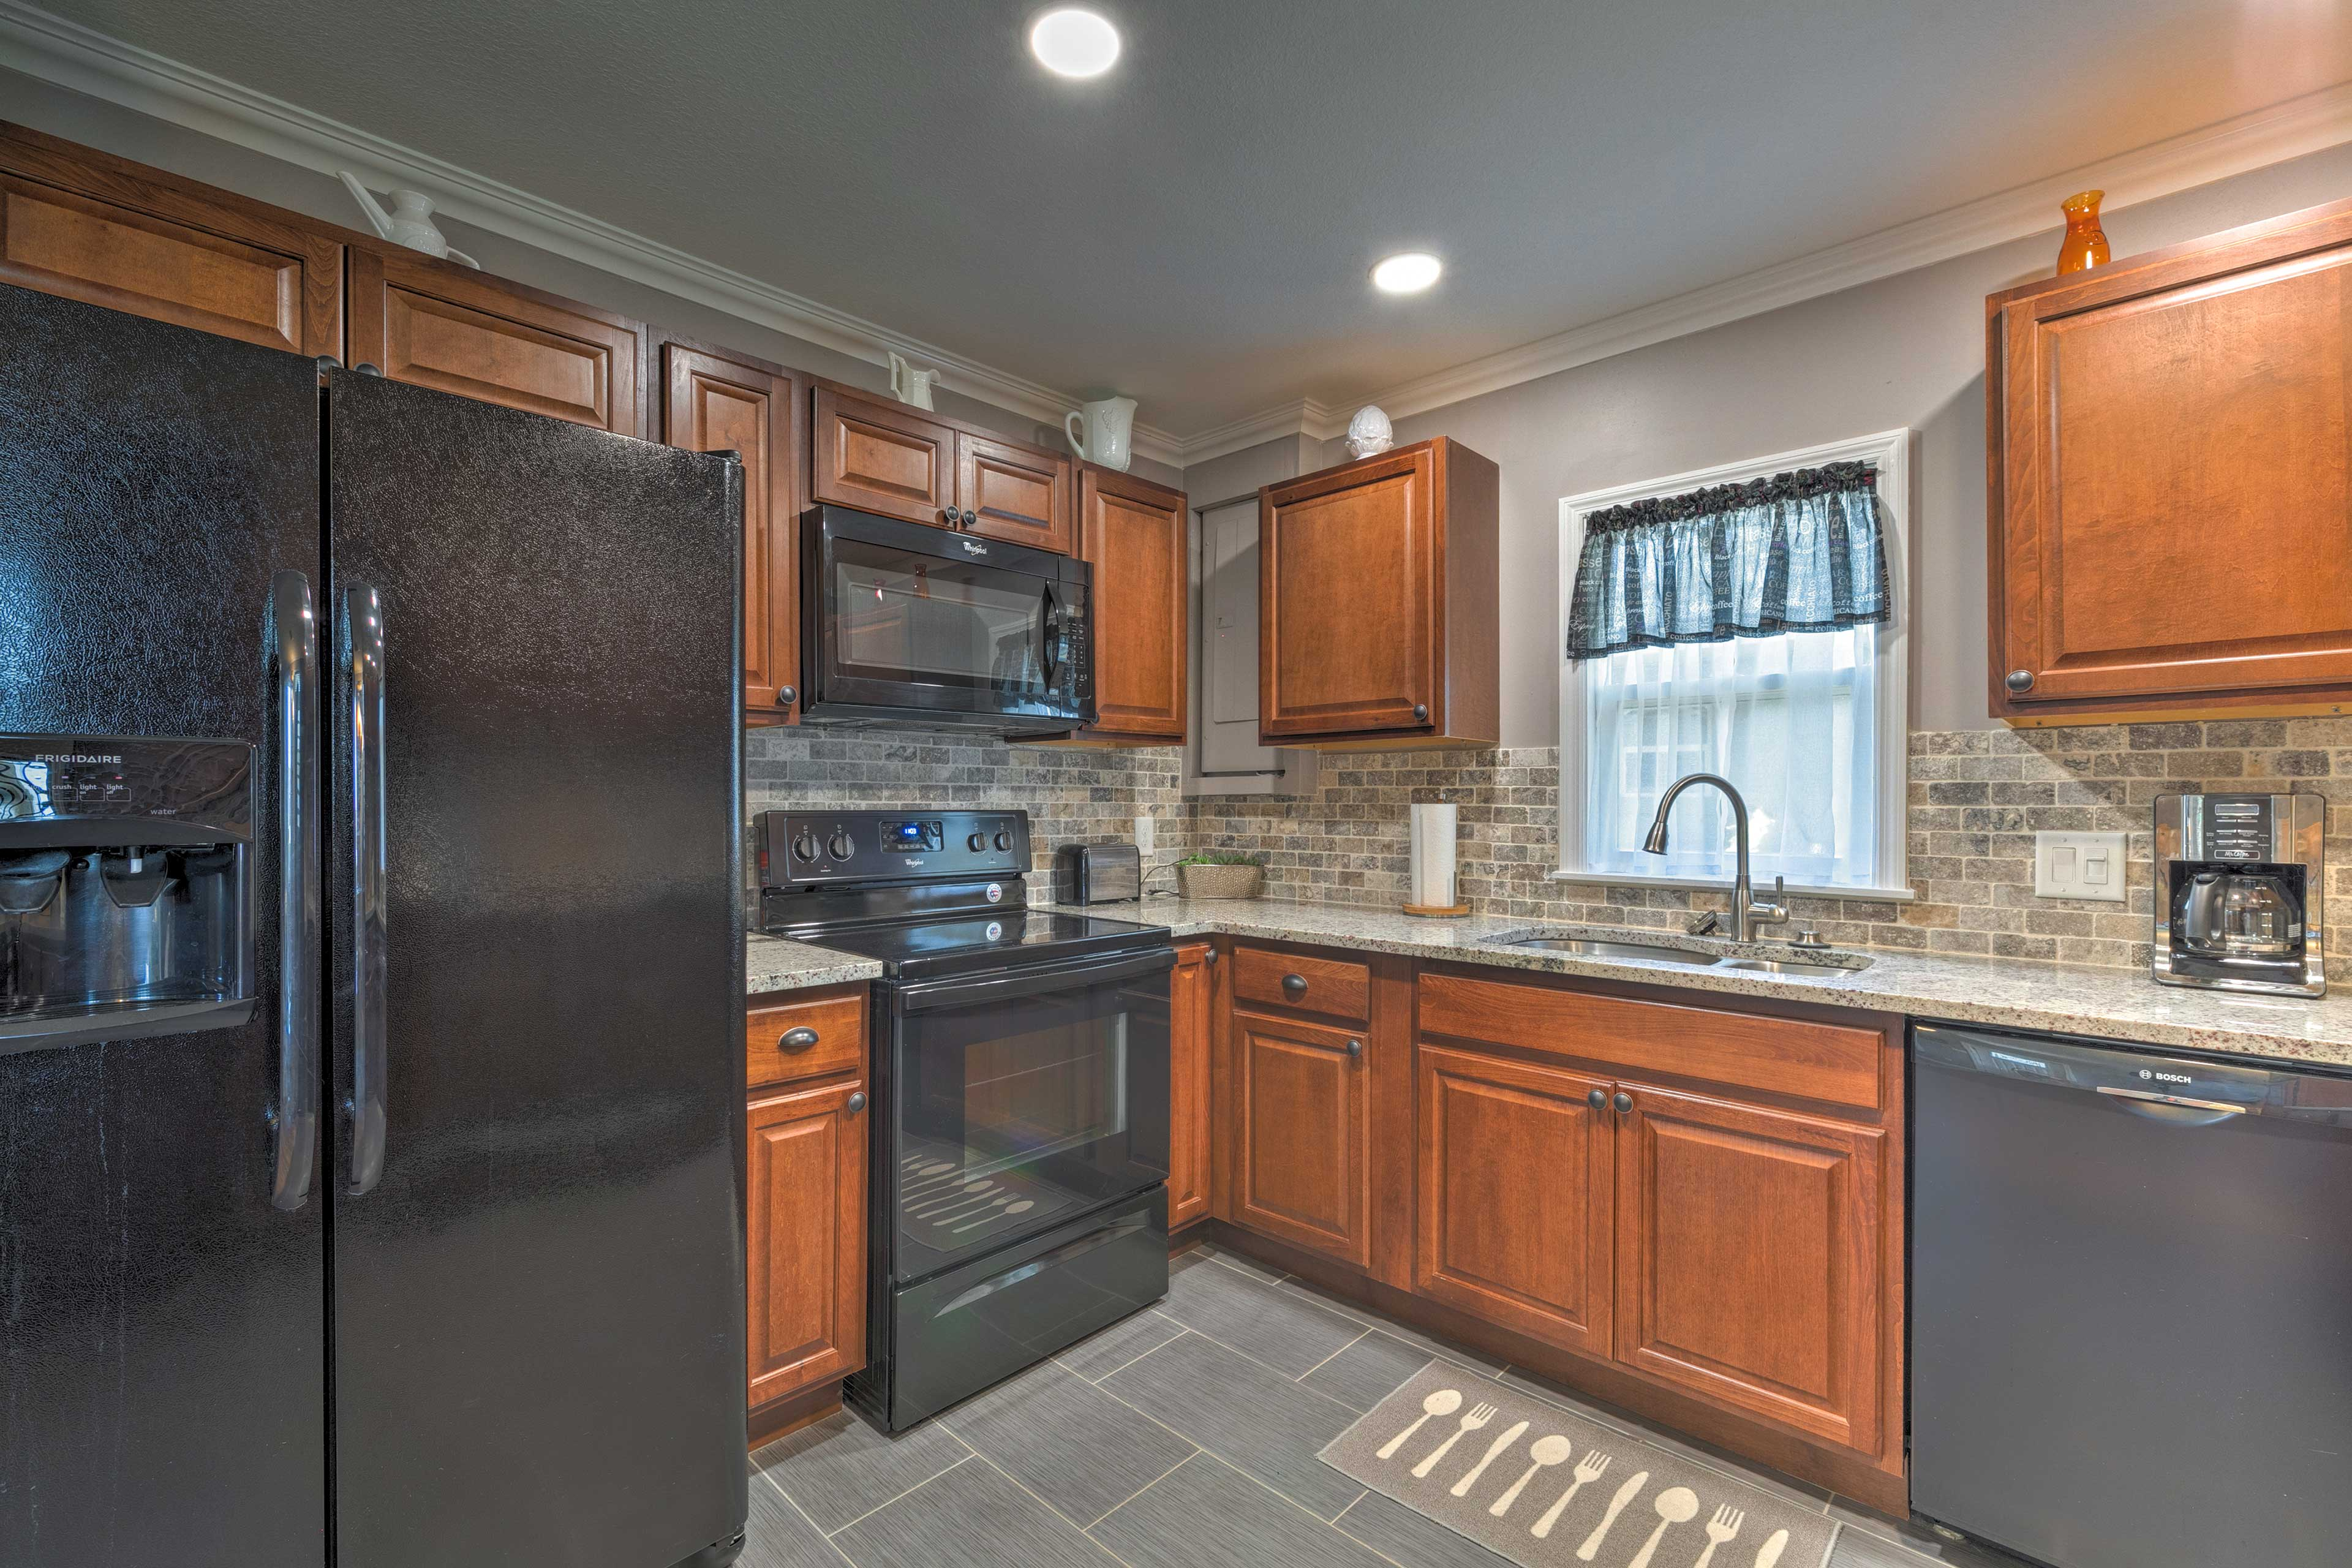 The modern kitchen is fully equipped, boasting a stone backsplash!